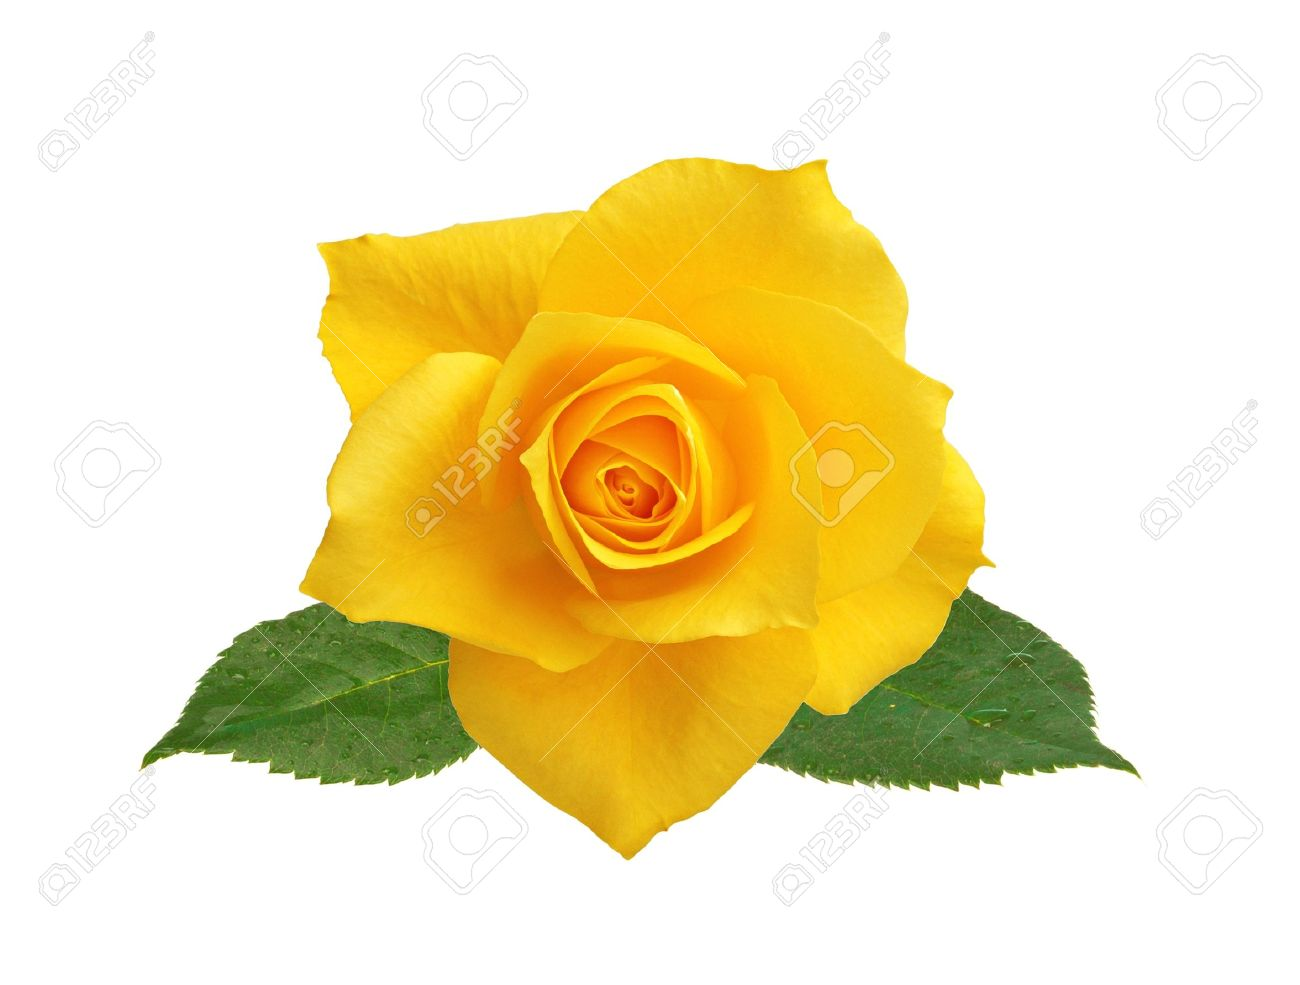 beautiful yellow rose with leaves isolated on white background stock